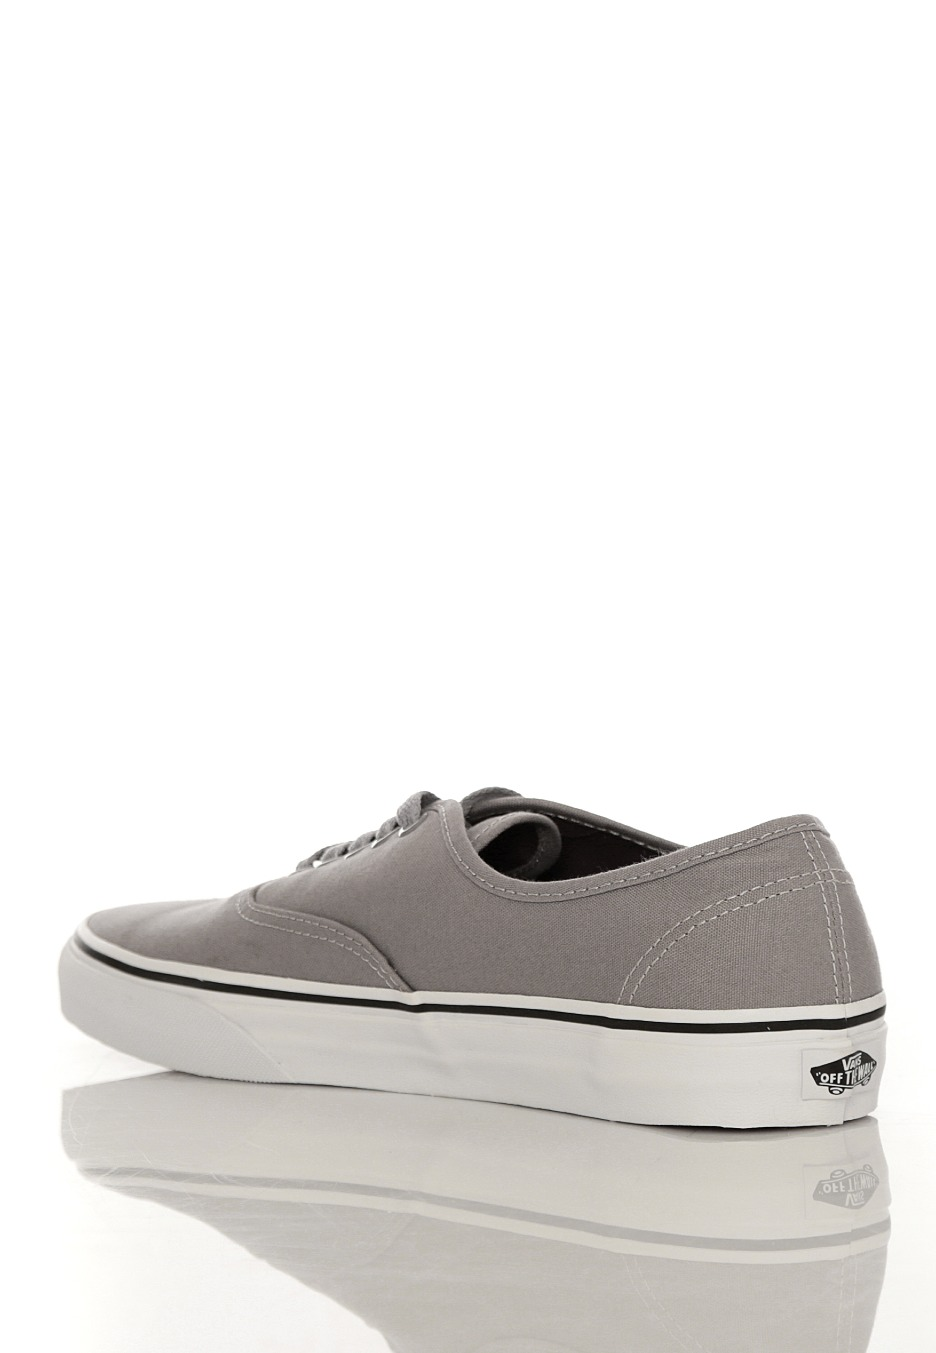 ... Vans - Authentic Sport Pop Frost Grey Port Royale - Shoes ... 6a68a763b5